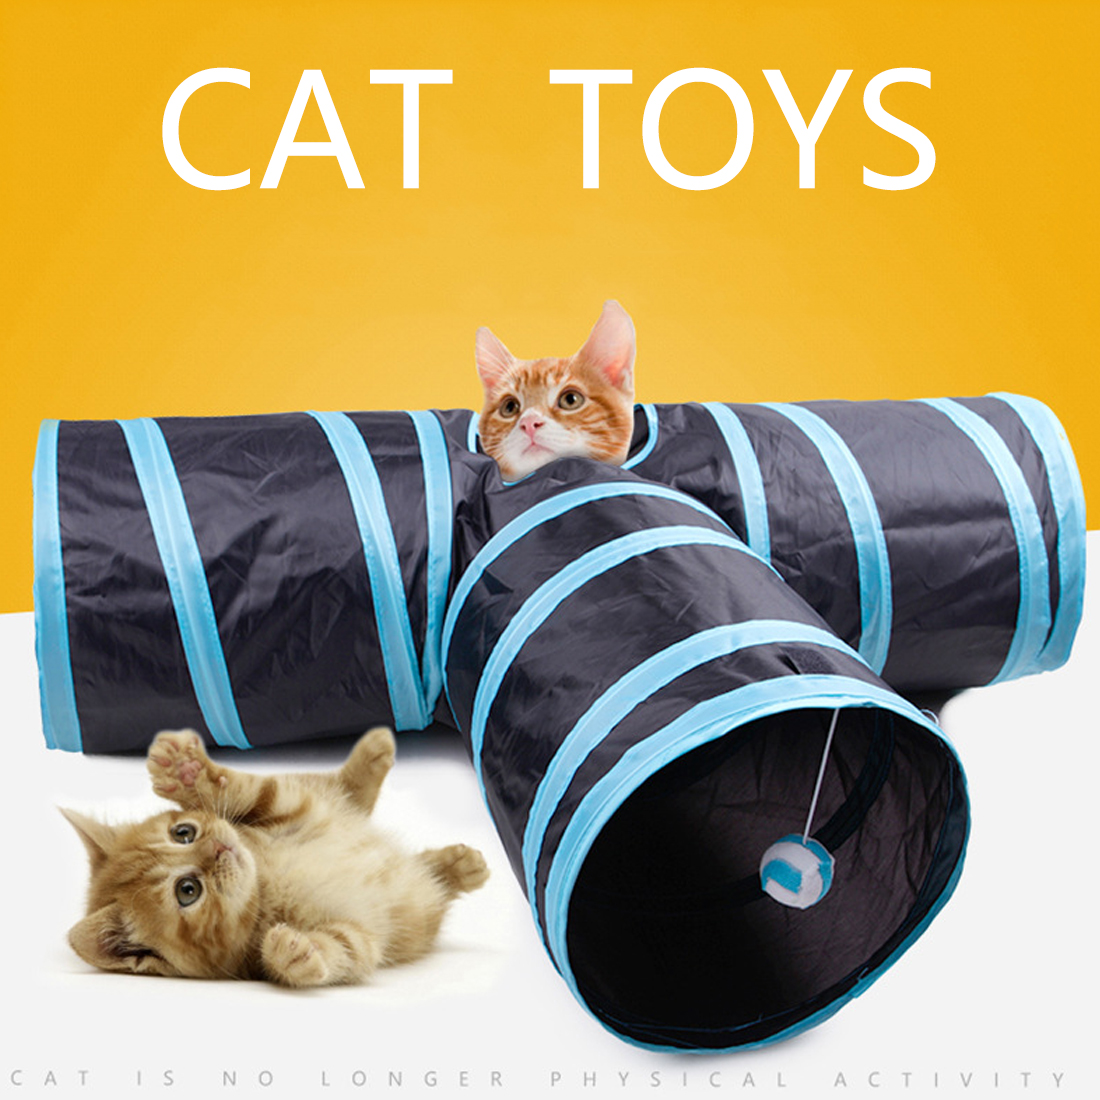 3 Ways Y Shape Foldable Pet Puppy Animal Cat Kitten Play Toy Exercise Tunnel Cave Cat Toys